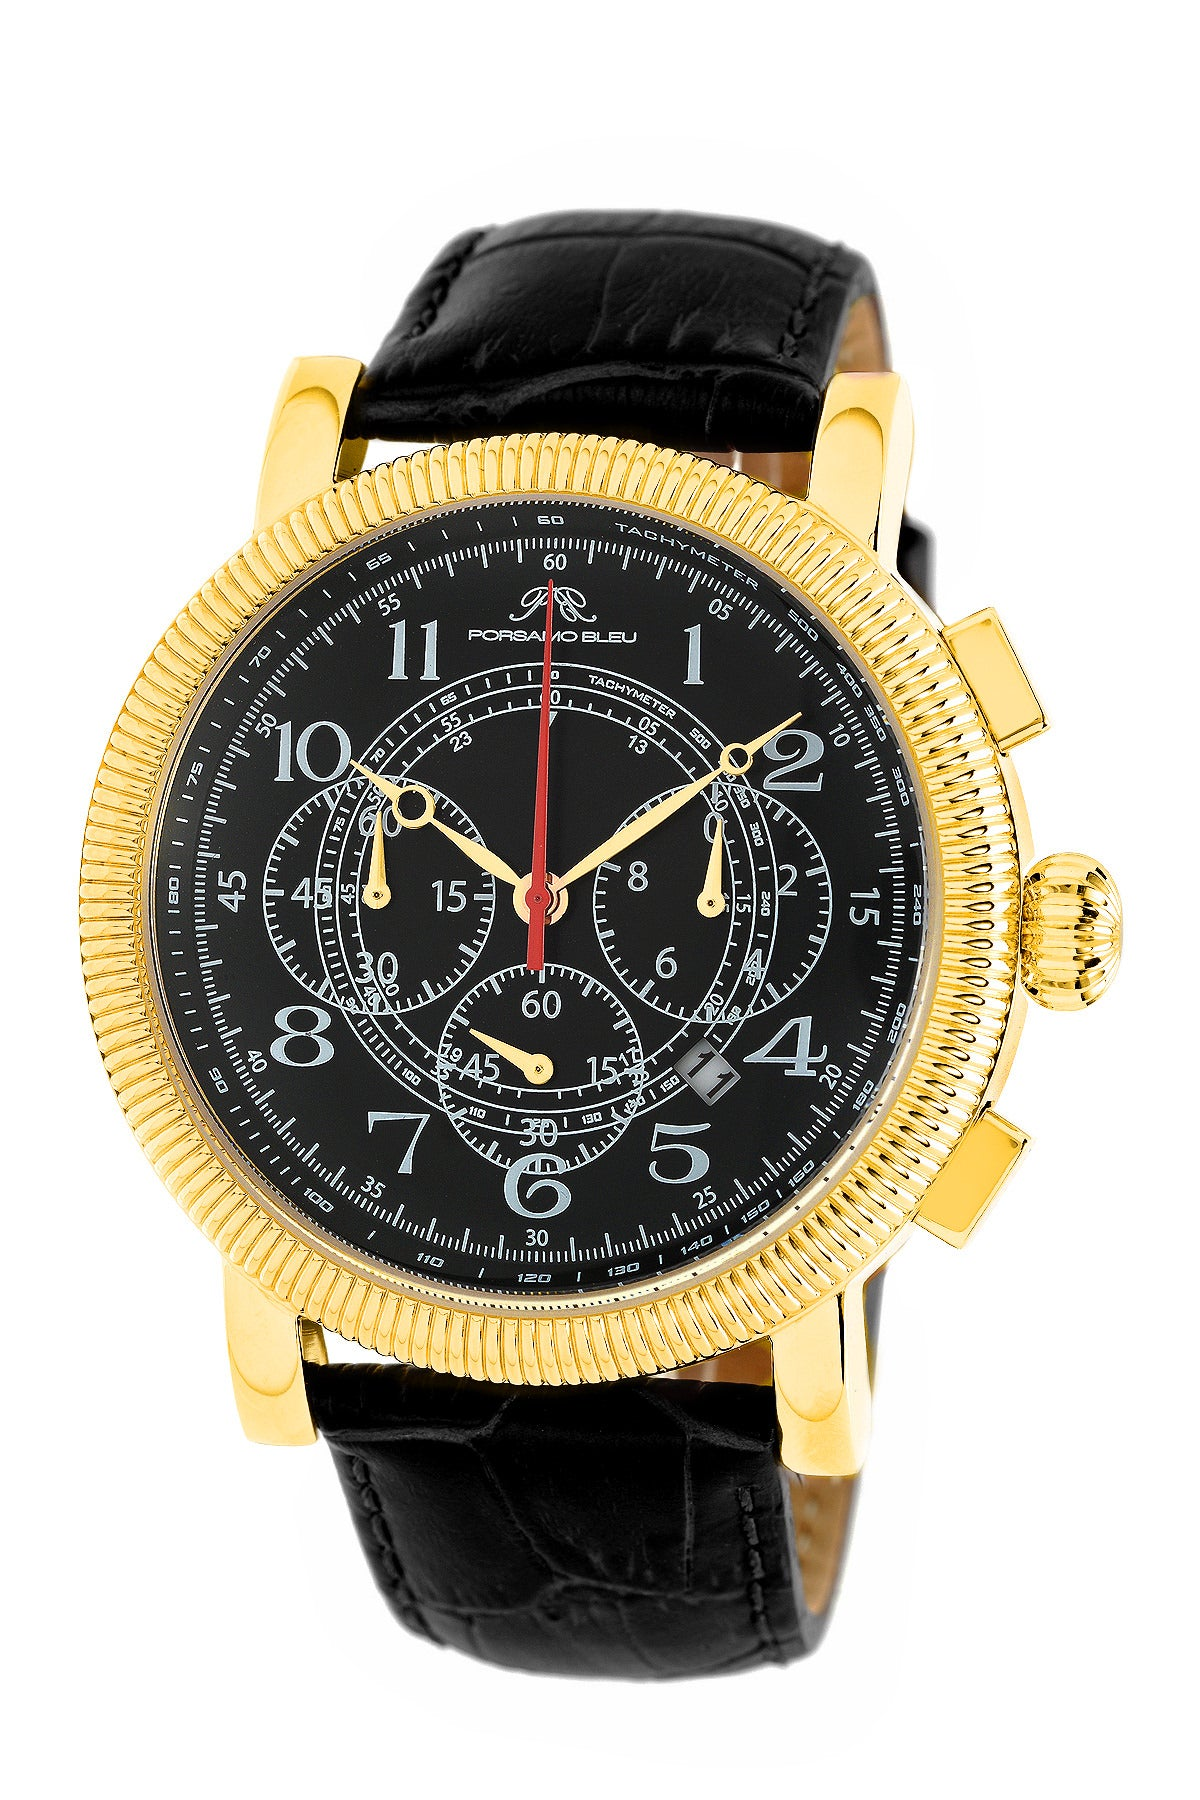 Porsamo Bleu Phileas luxury chronograph men's watch, genuine leather band gold, black 472BPHL